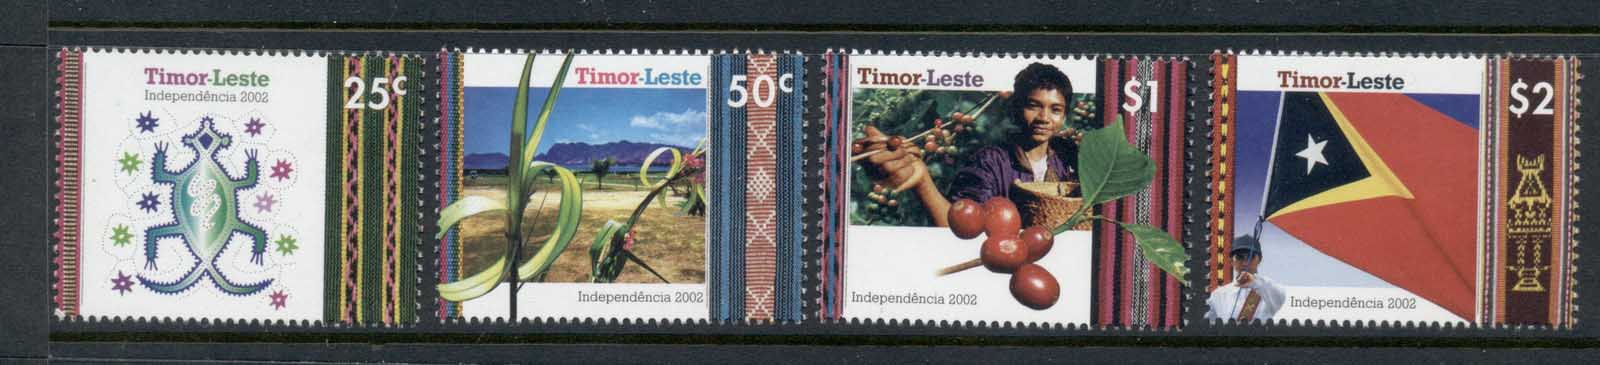 Timor Leste 2002 Independence MUH